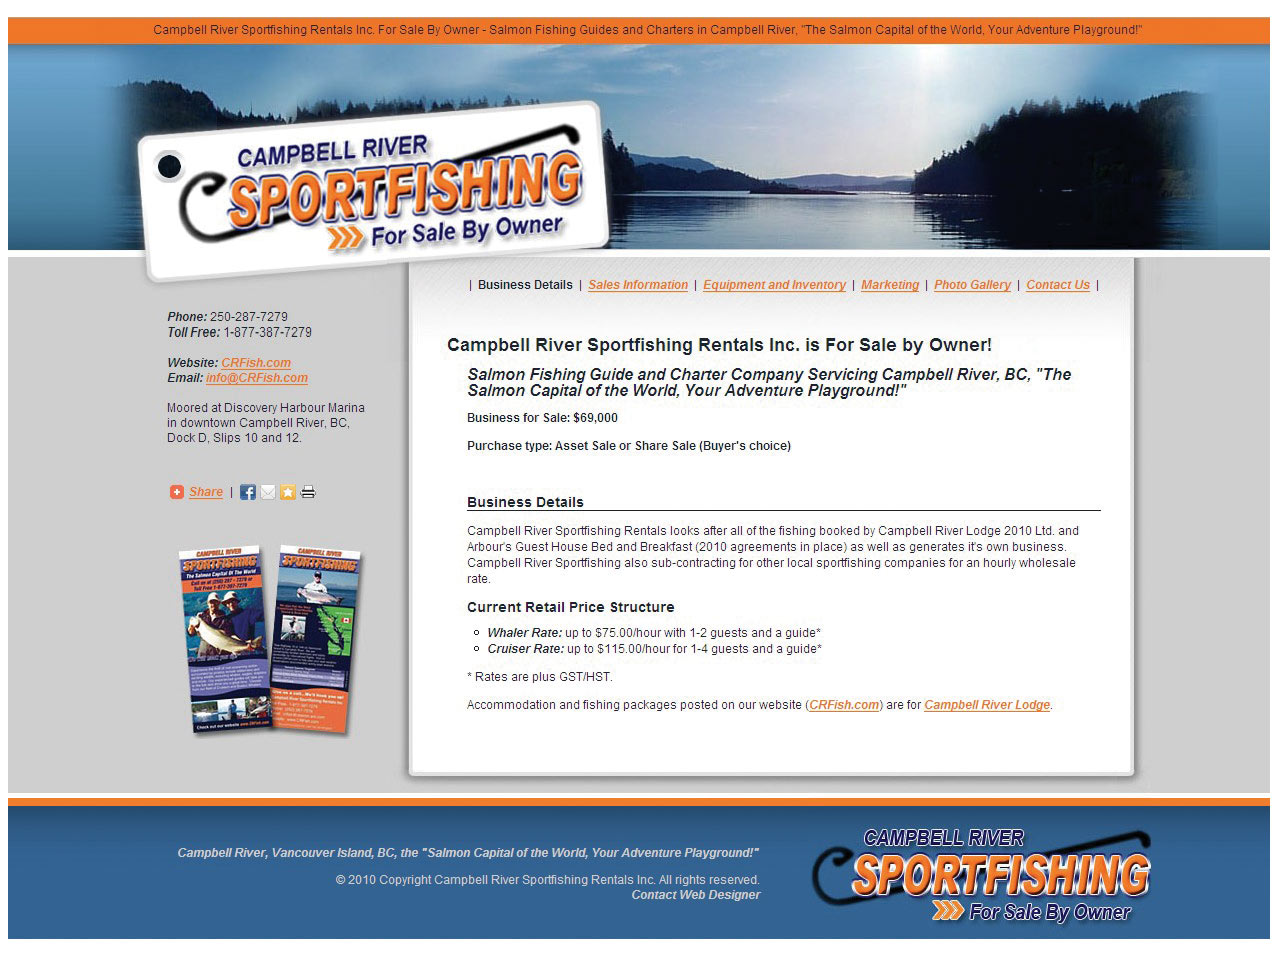 Campbell River Sportfishing For Sale By Owner